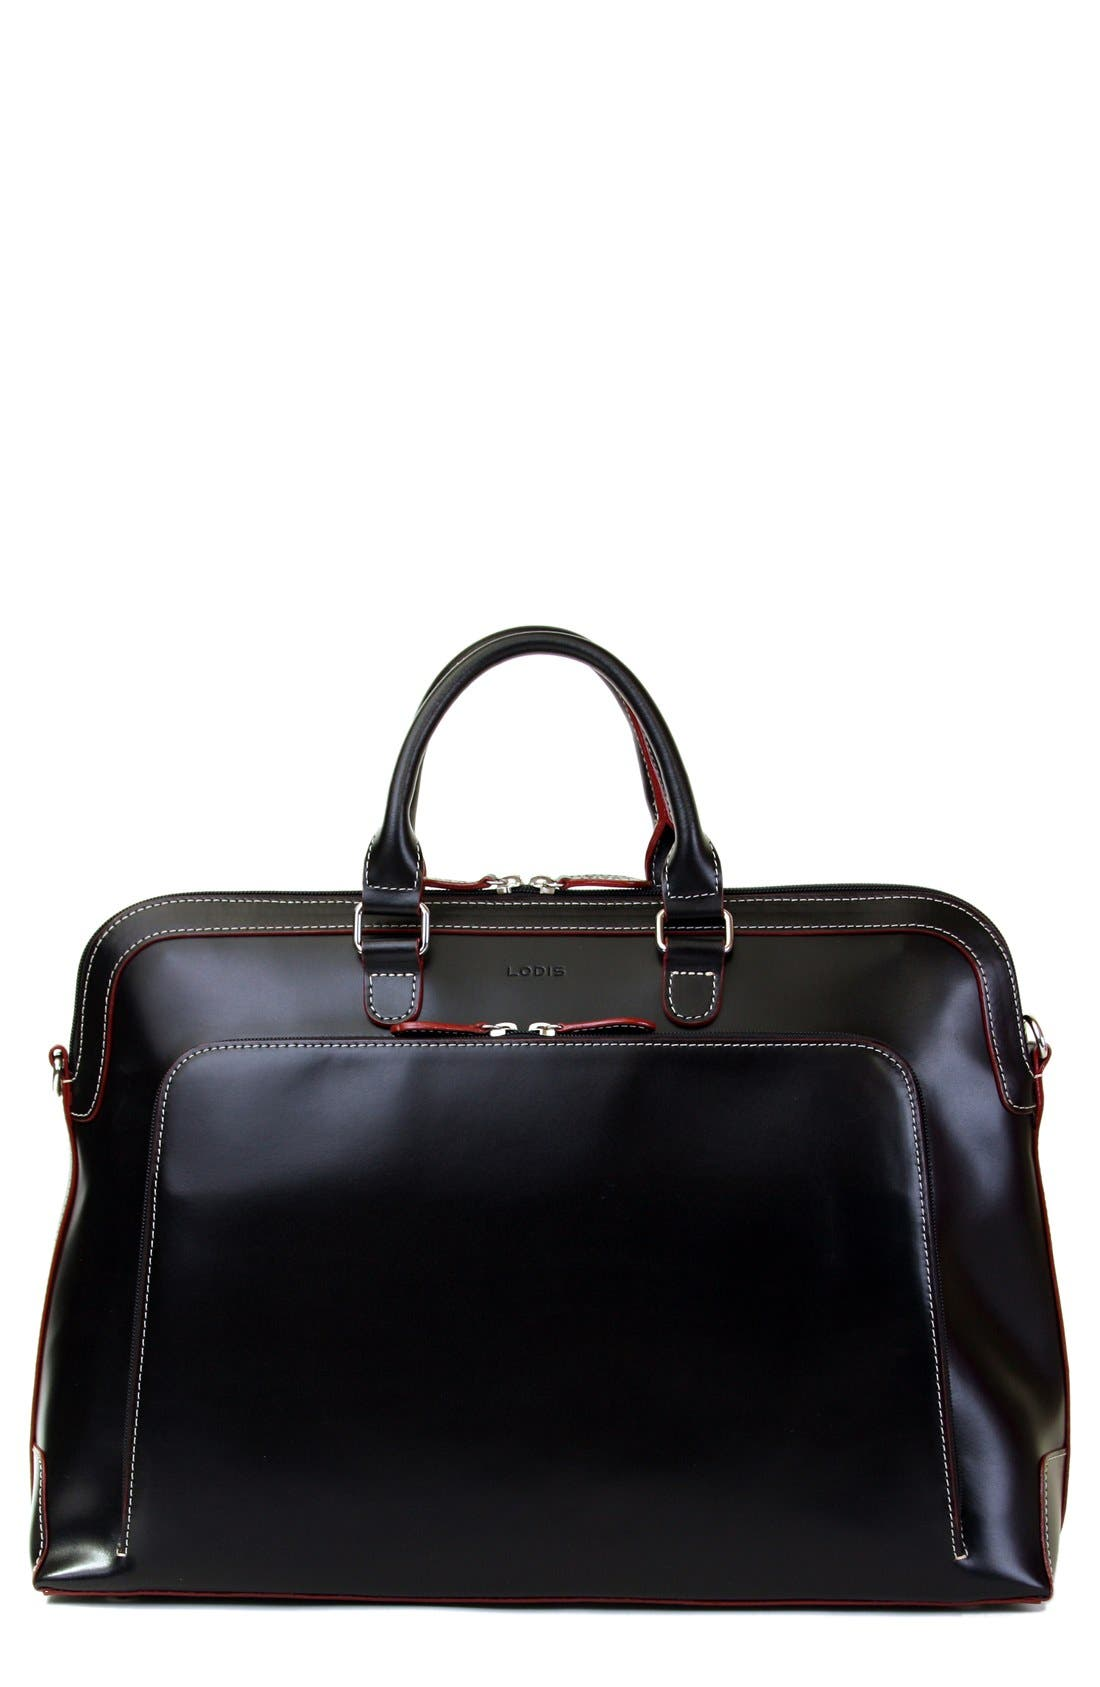 Alternate Image 1 Selected - Lodis 'Audrey Brera' Leather Briefcase